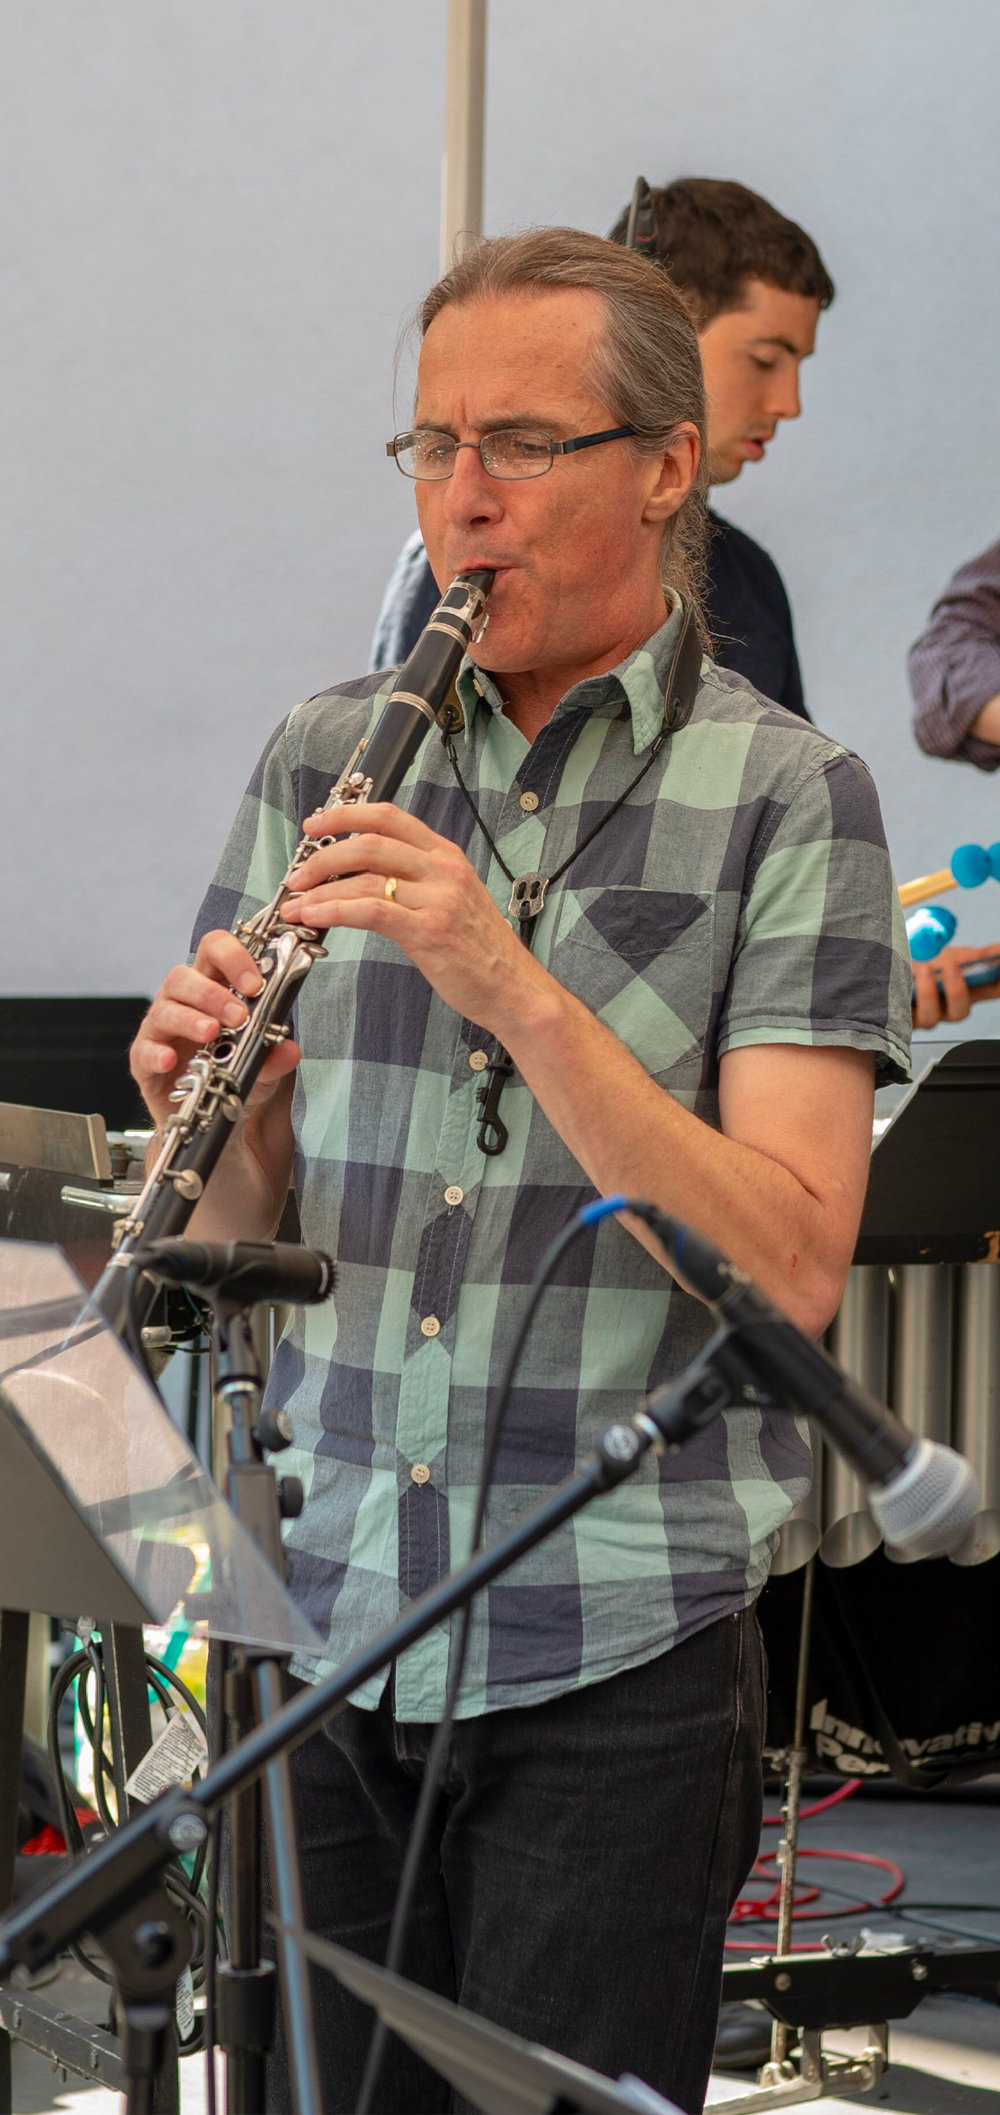 sheldon at SJ Jazz.jpg